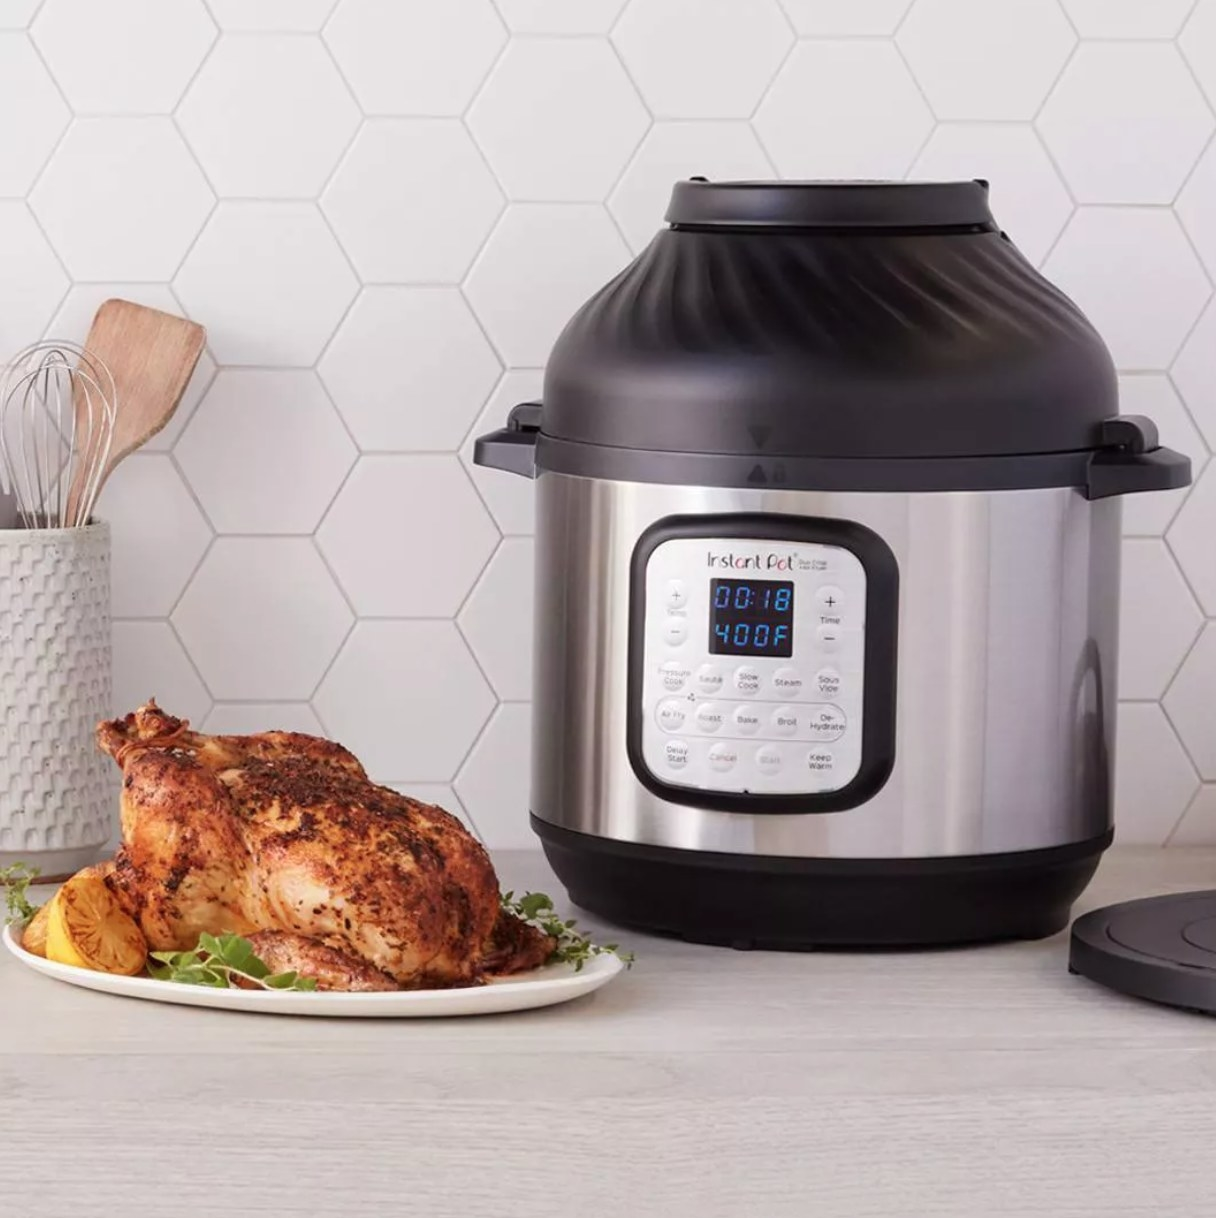 The Air Fryer